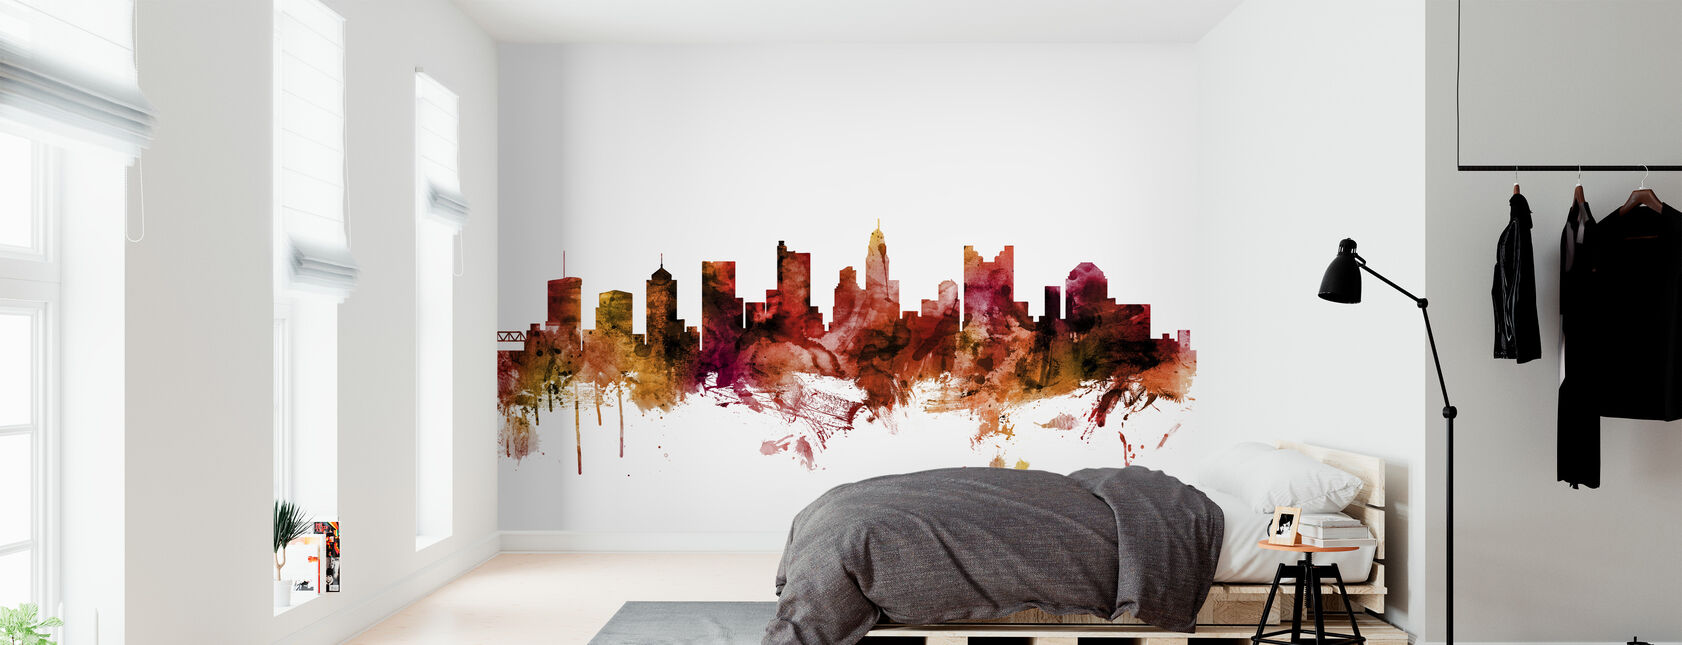 Columbus Ohio Skyline - Wallpaper - Bedroom